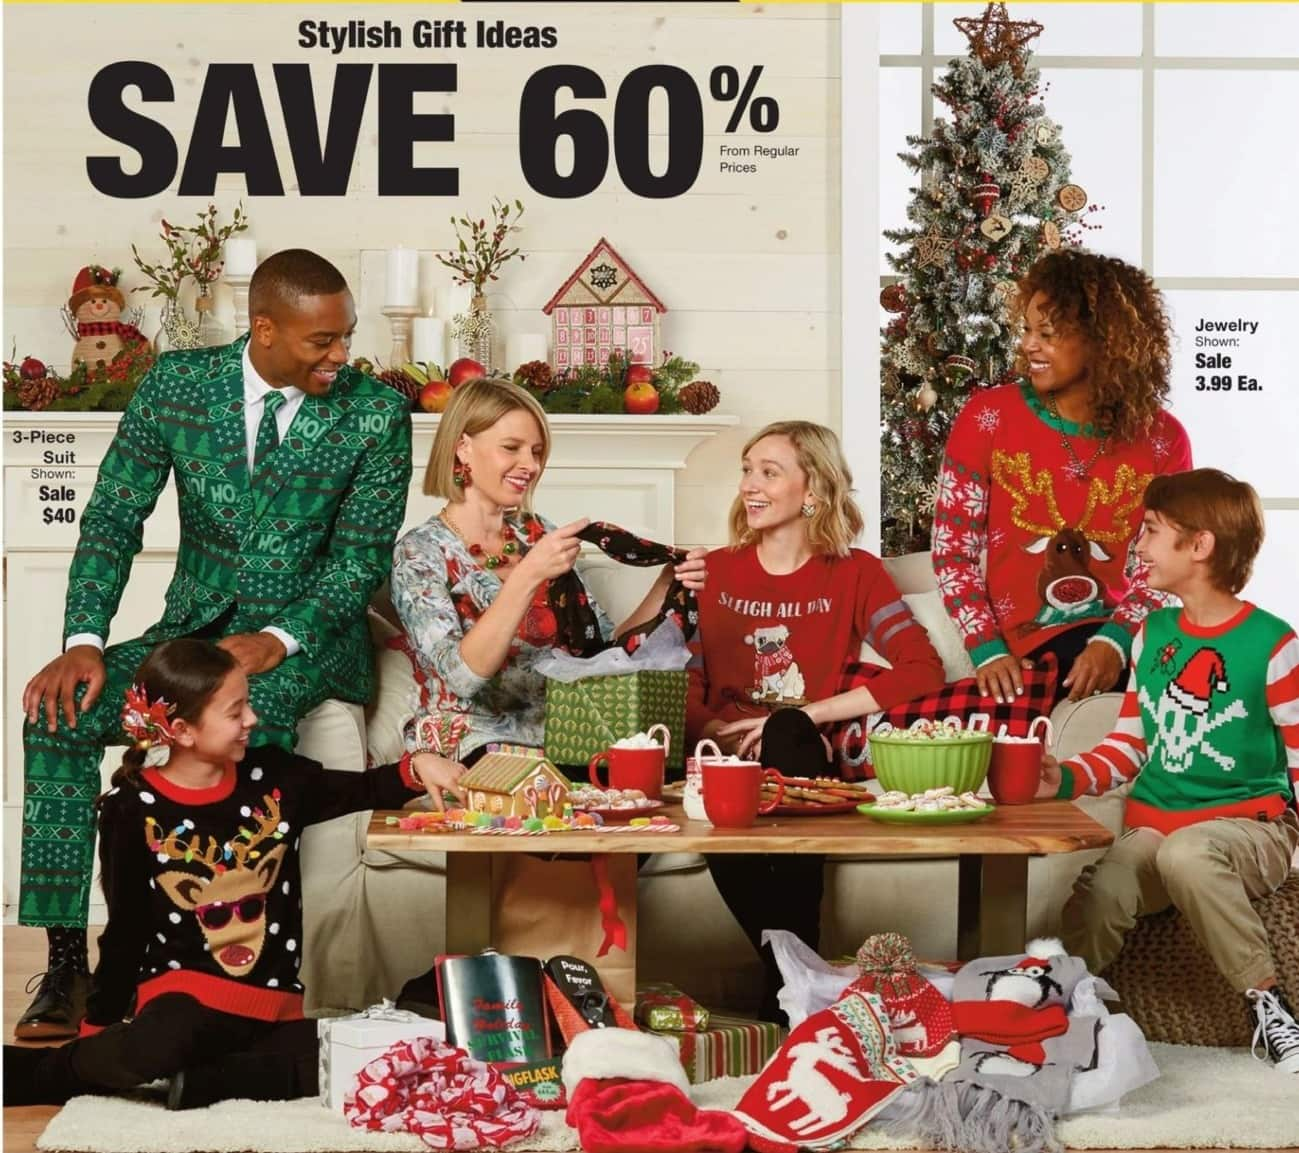 Fred Meyer Black Friday: Holiday Gift Ideas - 60% Off